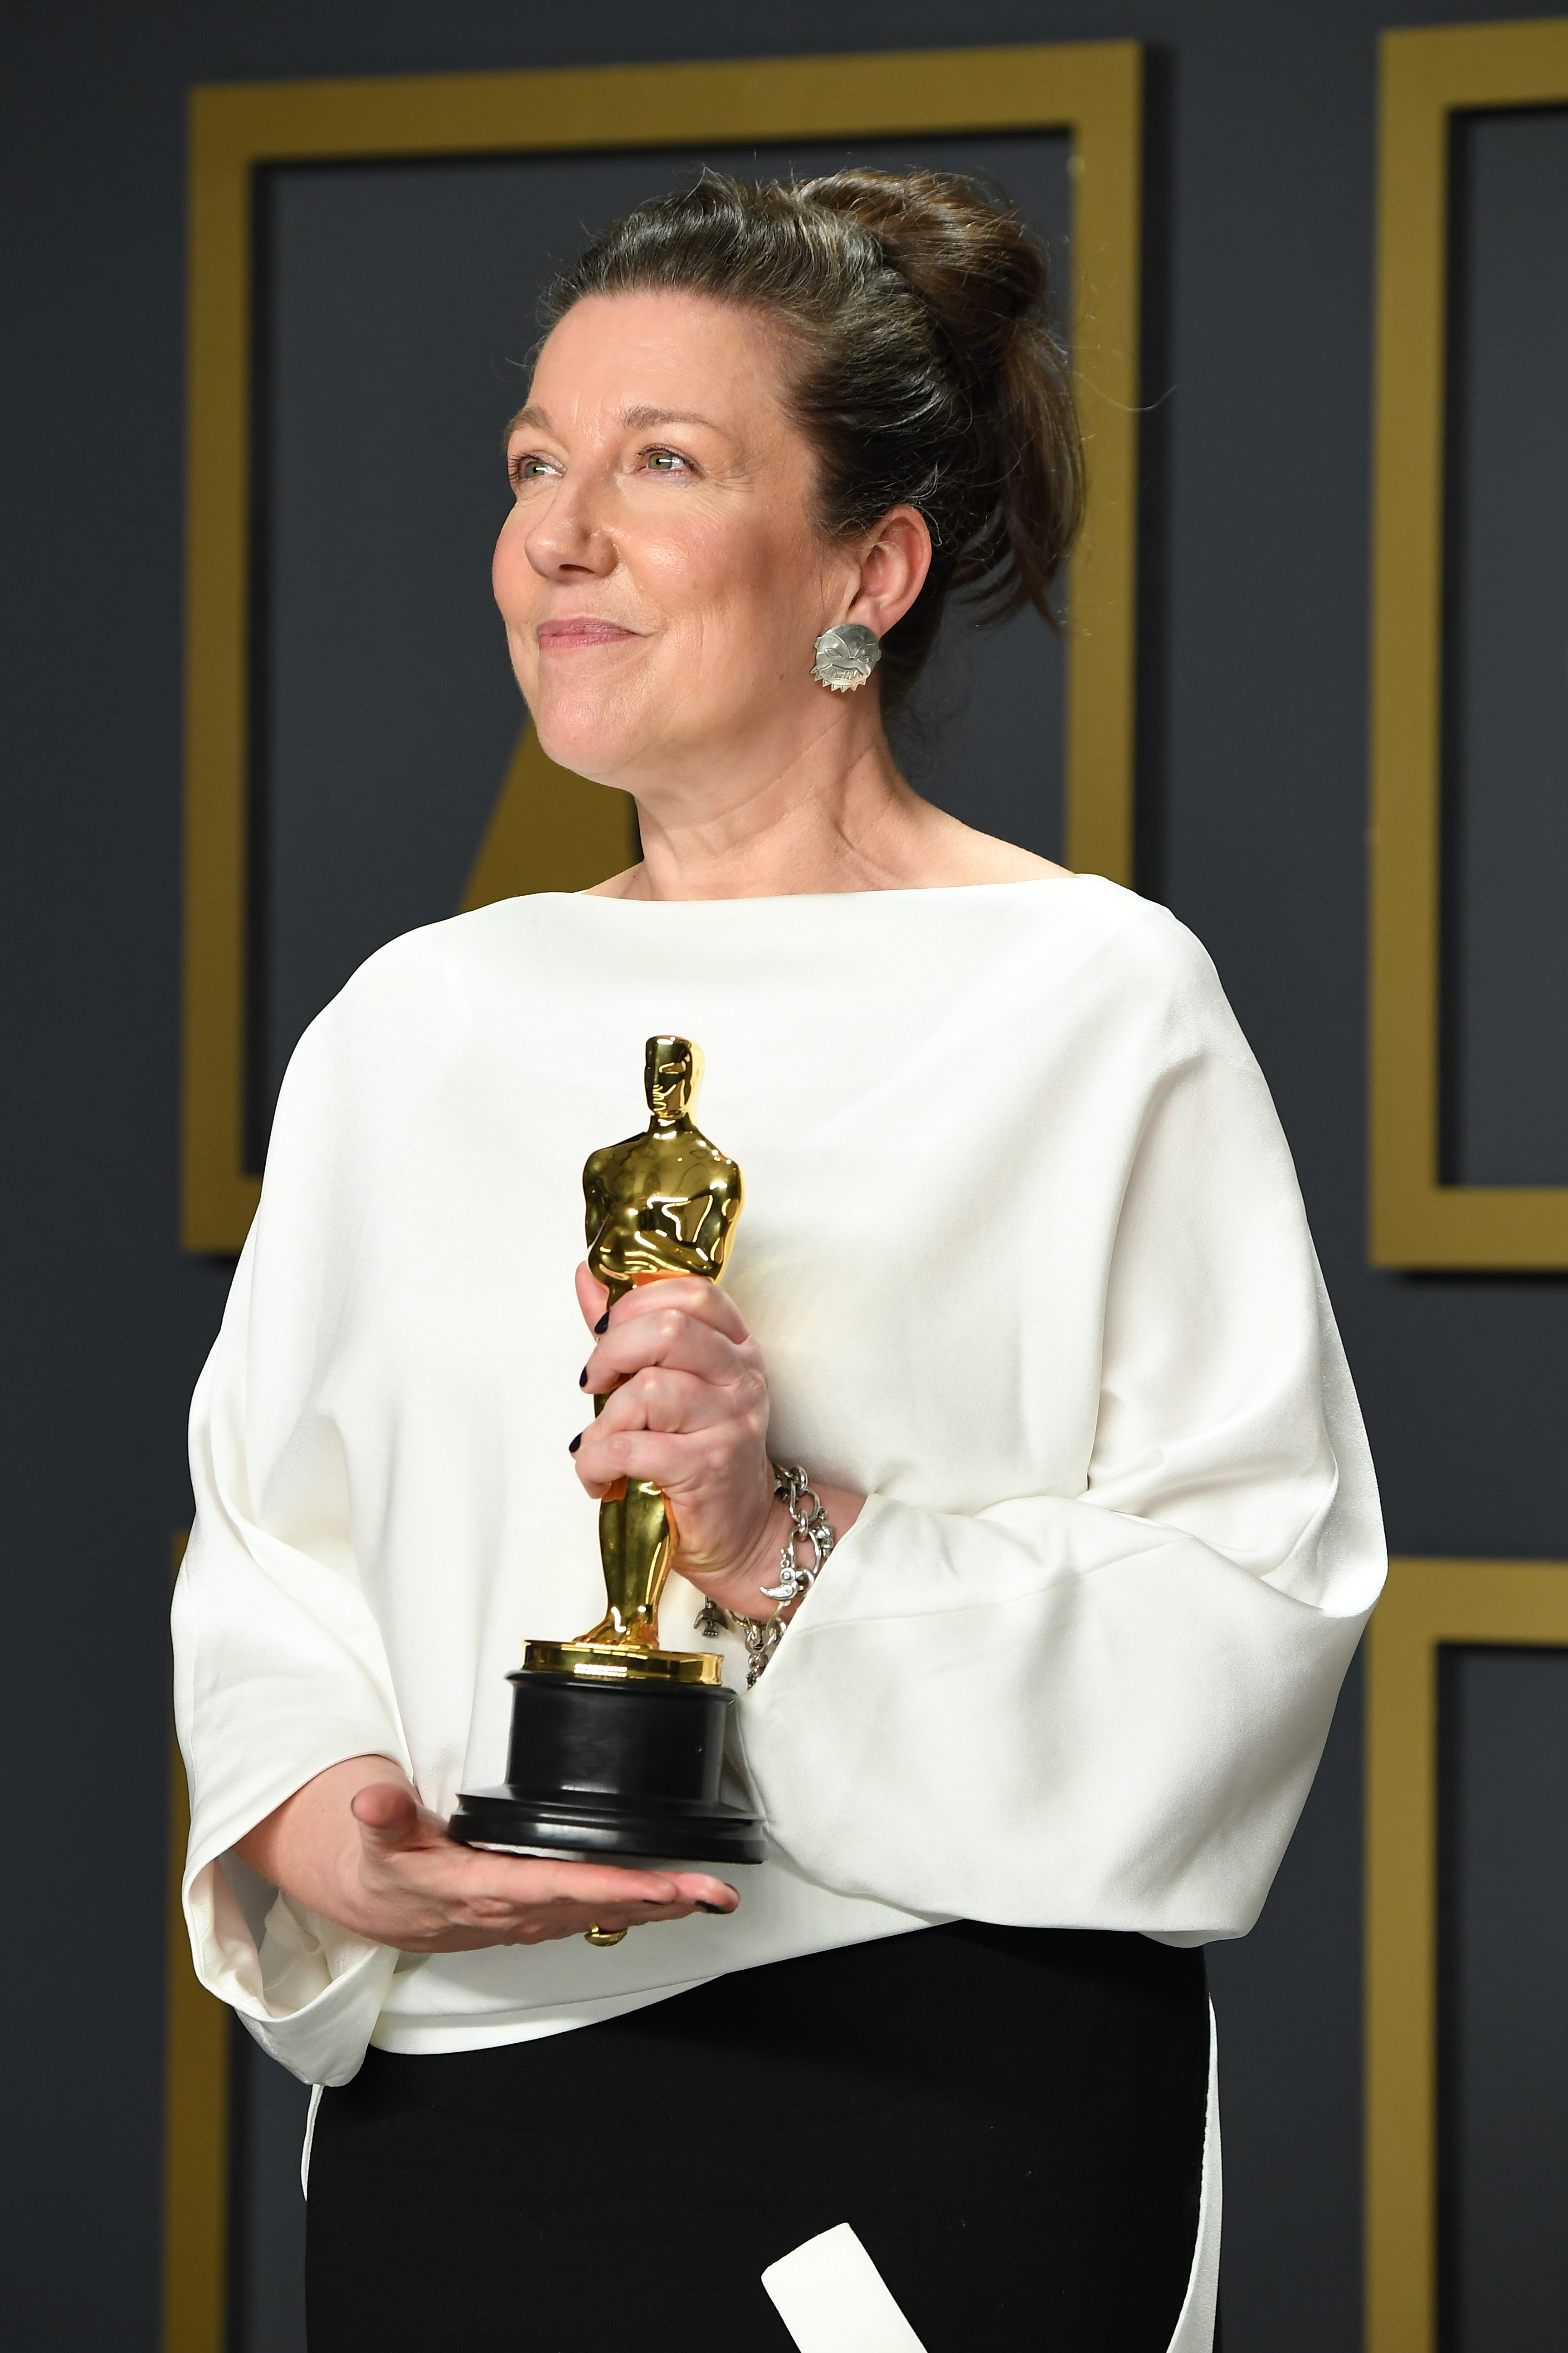 """Jacqueline Durran, winner of the Costume Design award for """"Little Women ,"""" poses in the press room during the 92nd Annual Academy Awards at Hollywood and Highland on February 09, 2020 in Hollywood, California. (Photo by Steve Granitz/WireImage )"""